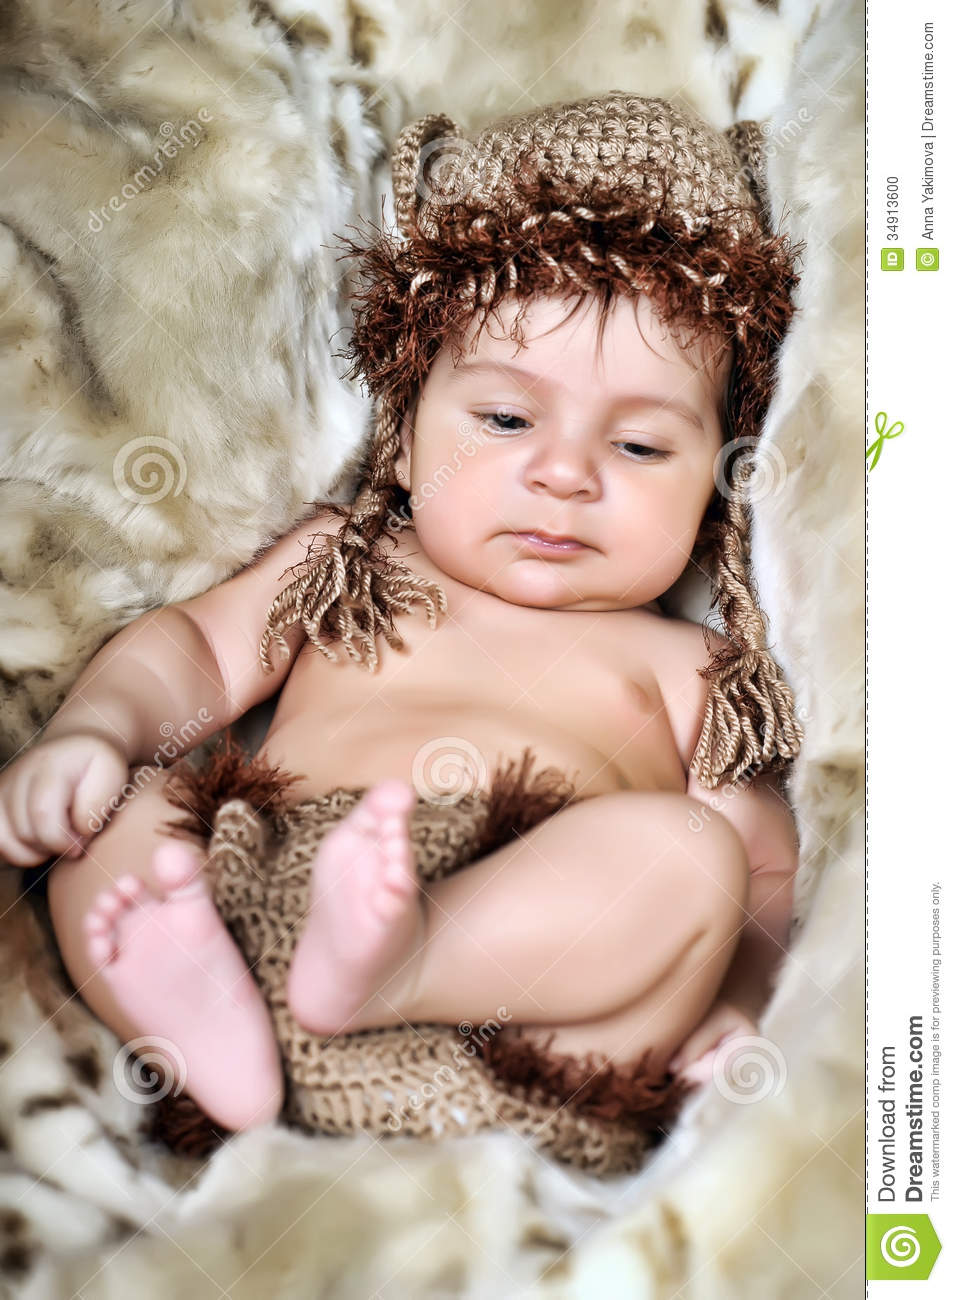 cute little newborn baby boy stock photo - image of content, curly